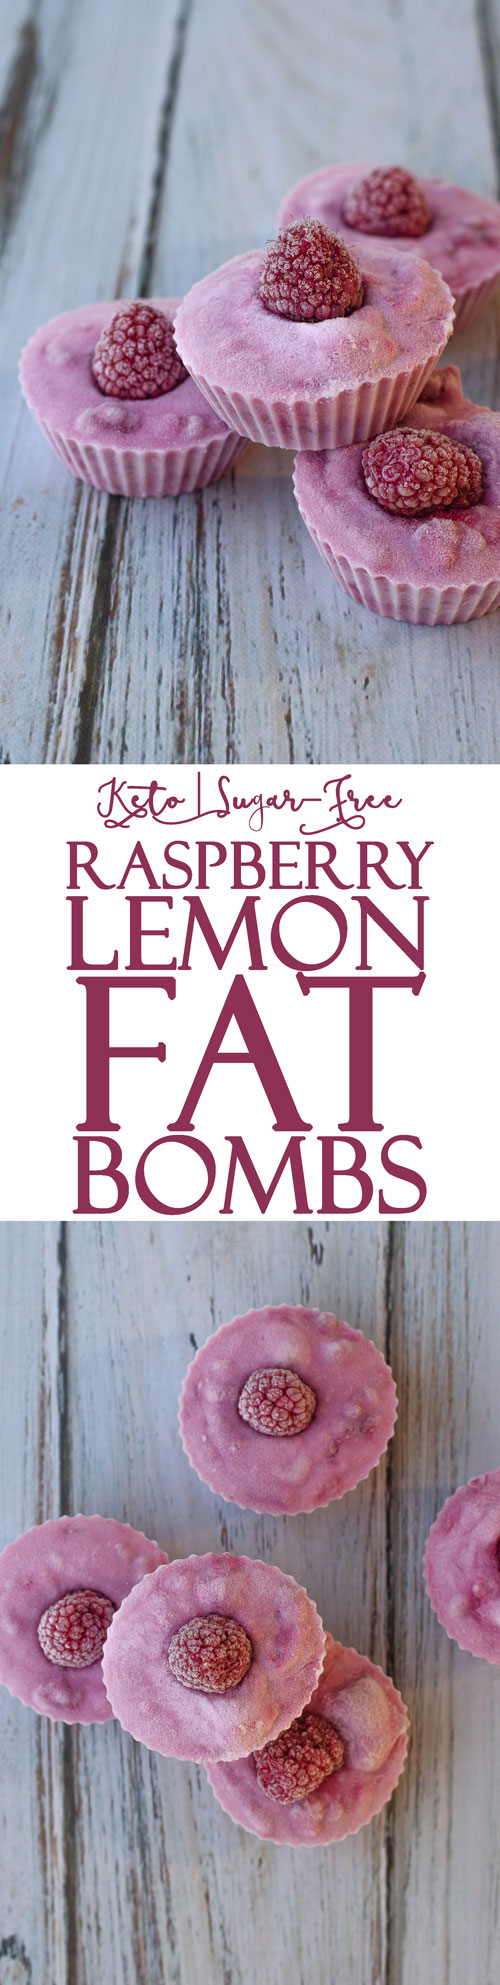 A simple four-ingredient dessert recipe, these raspberry lemon fat bombs are a real treat! Gluten-free, grain-free, sugar-free, Paleo, low-carb, keto.